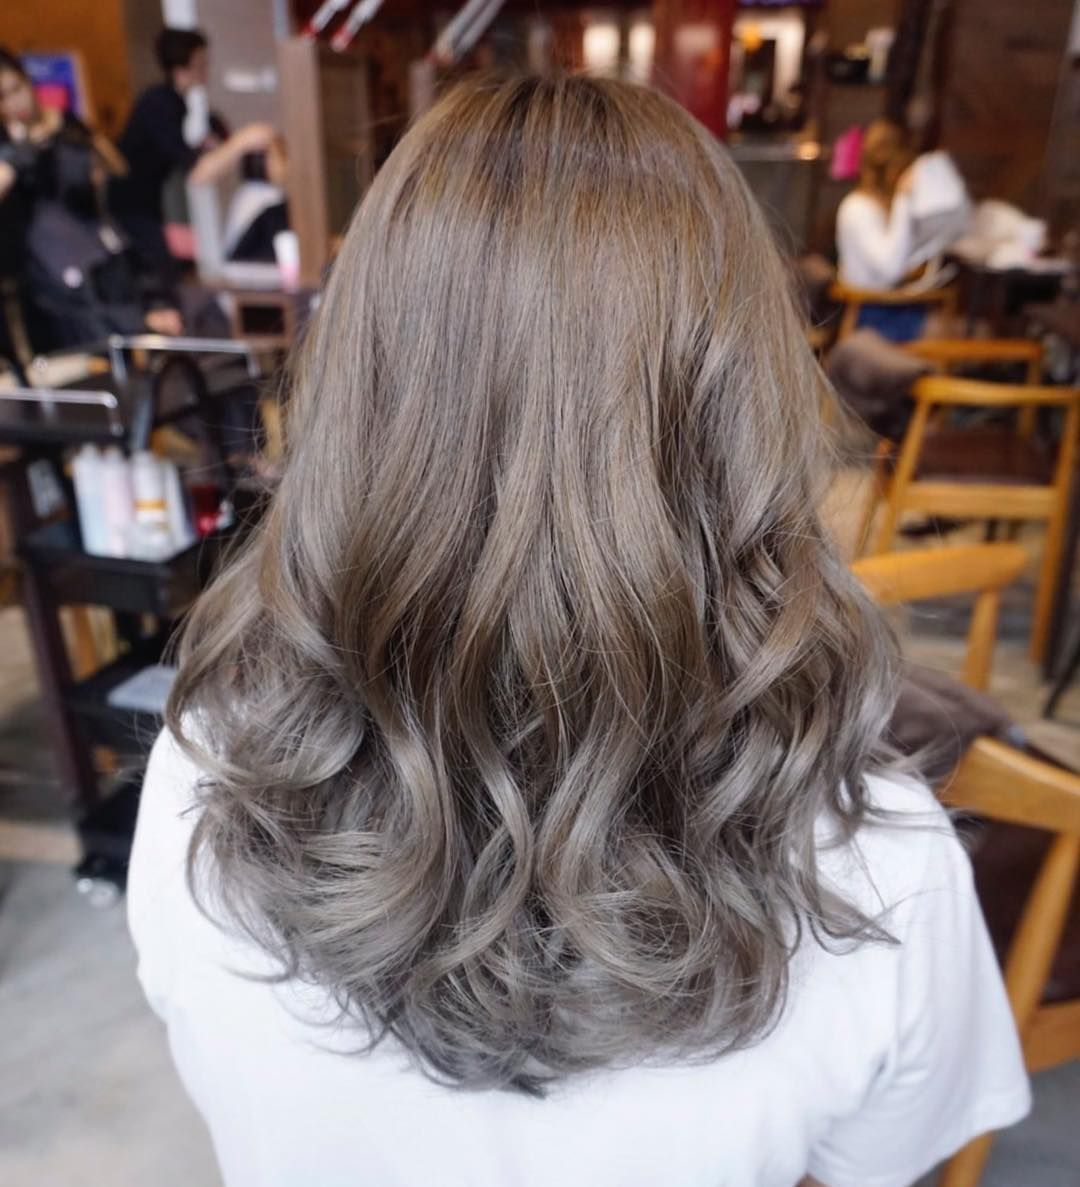 Image Result For Milk Tea Color Hair Hair Color Balayage Beige Hair Beige Hair Color